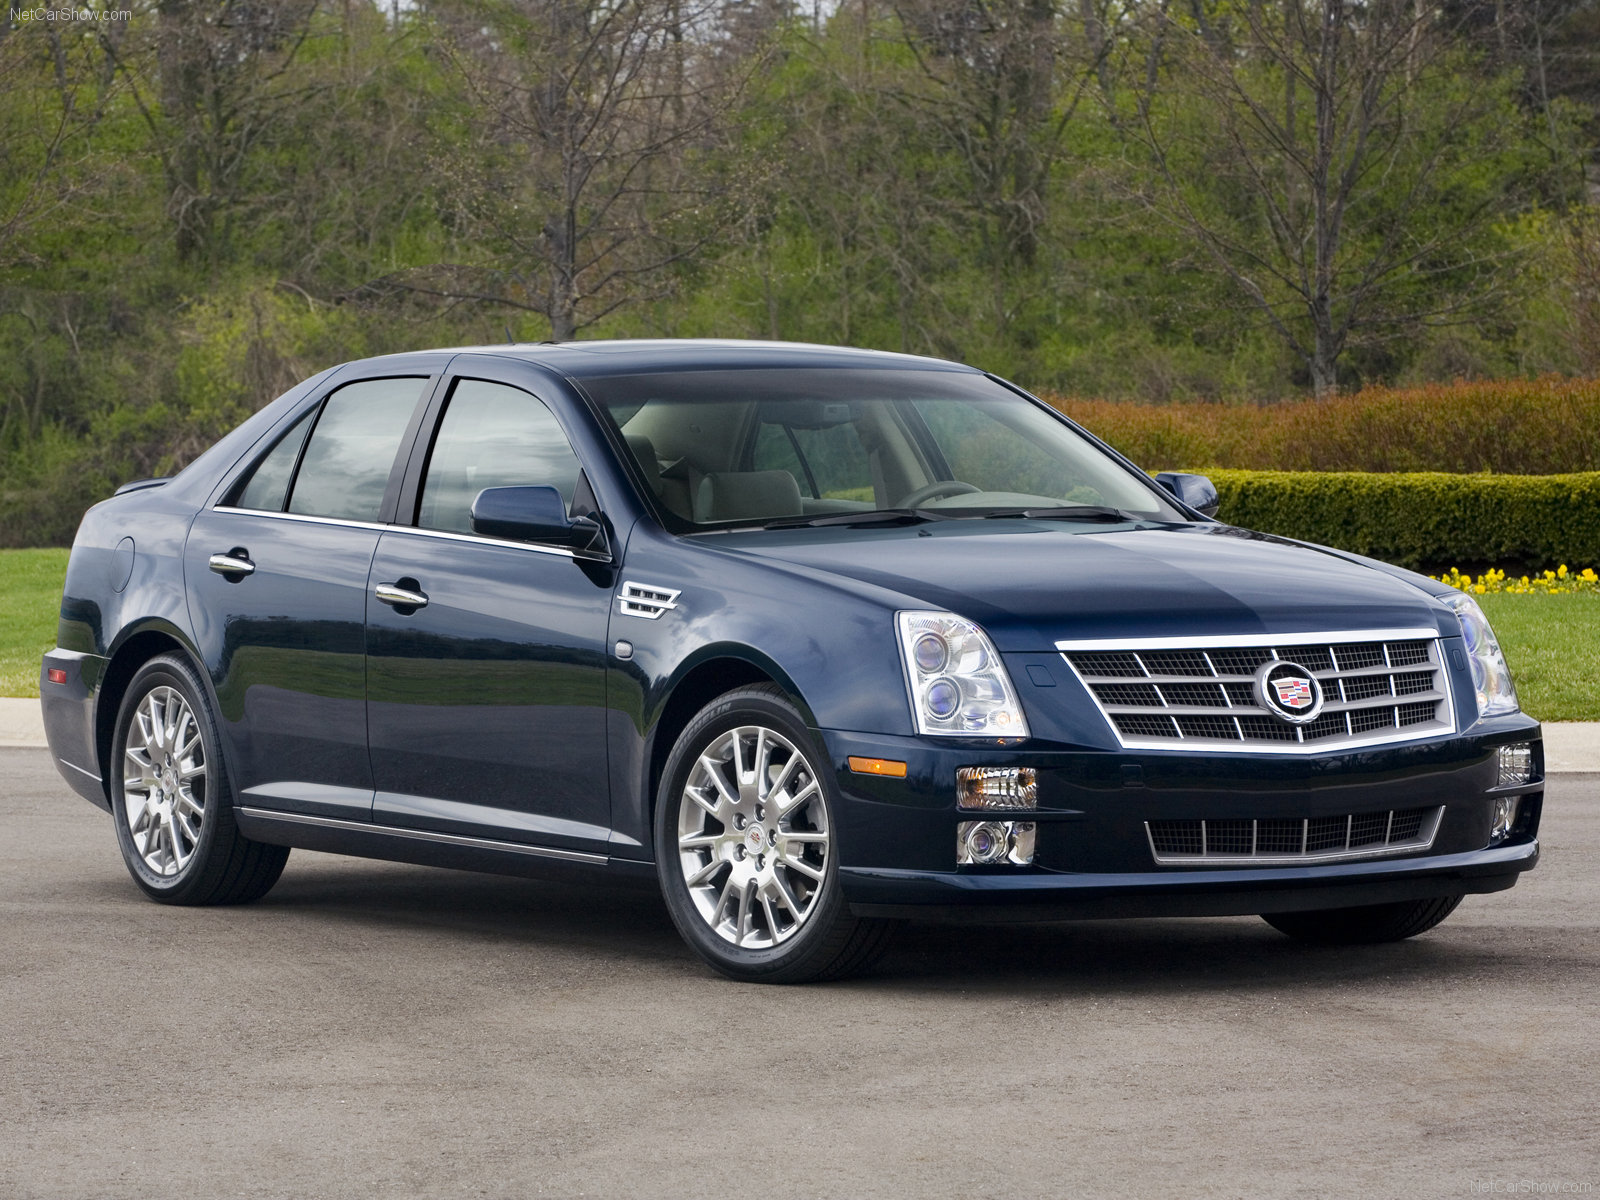 Cadillac STS photos - PhotoGallery with 21 pics| CarsBase.com